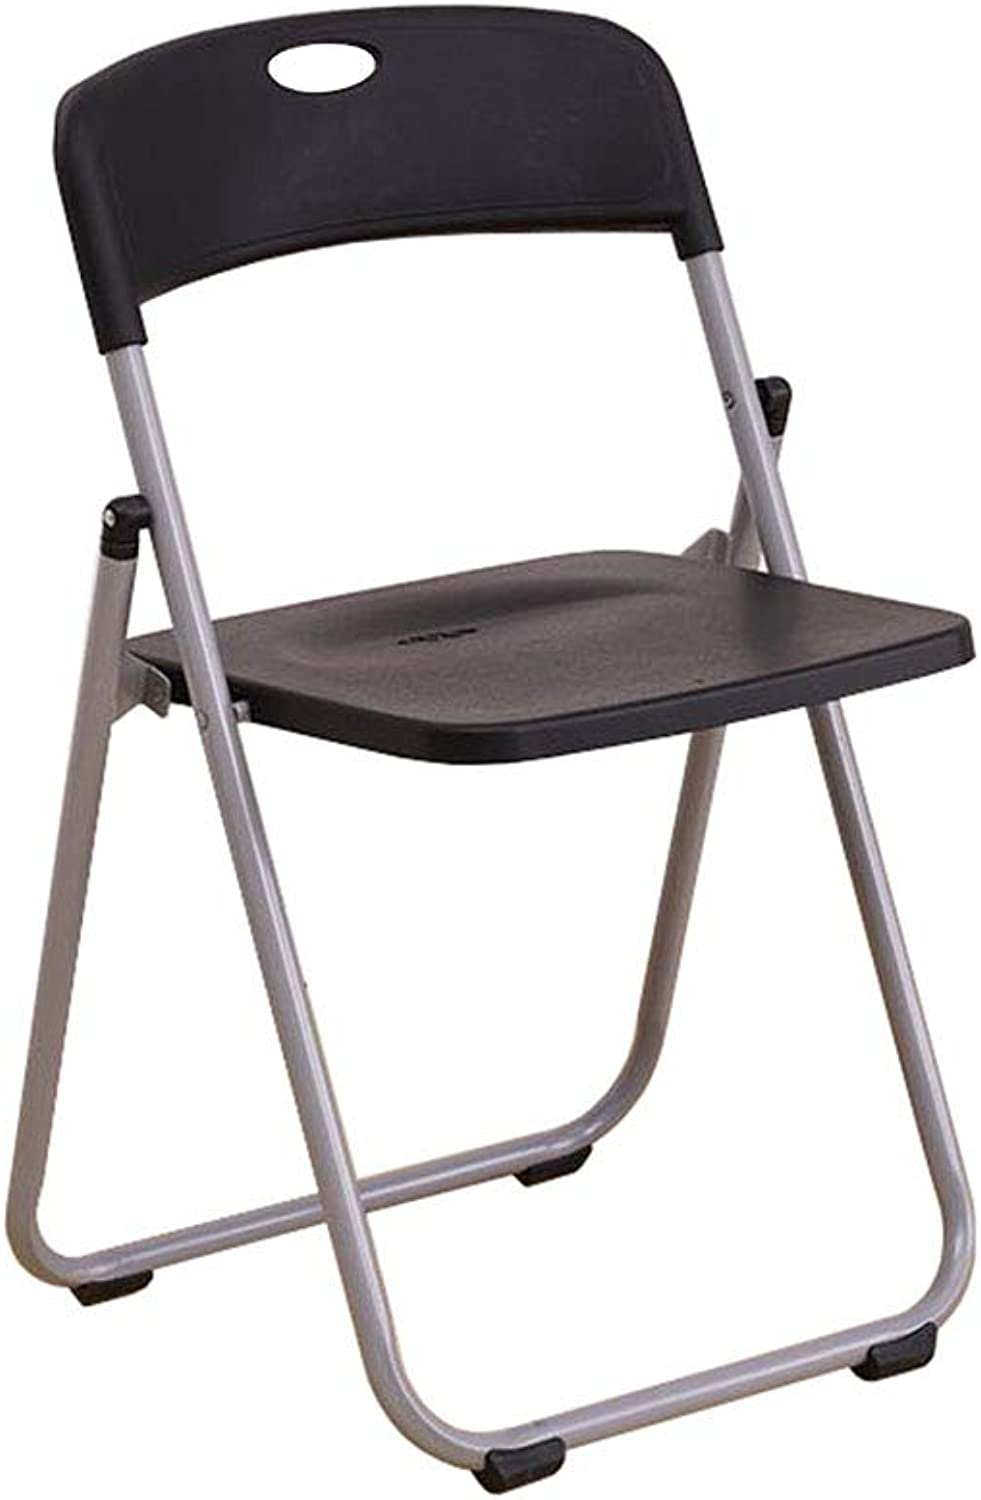 Folding Chair Desk Chair Office Reception Dining Backrest Chair Steel+Plastic